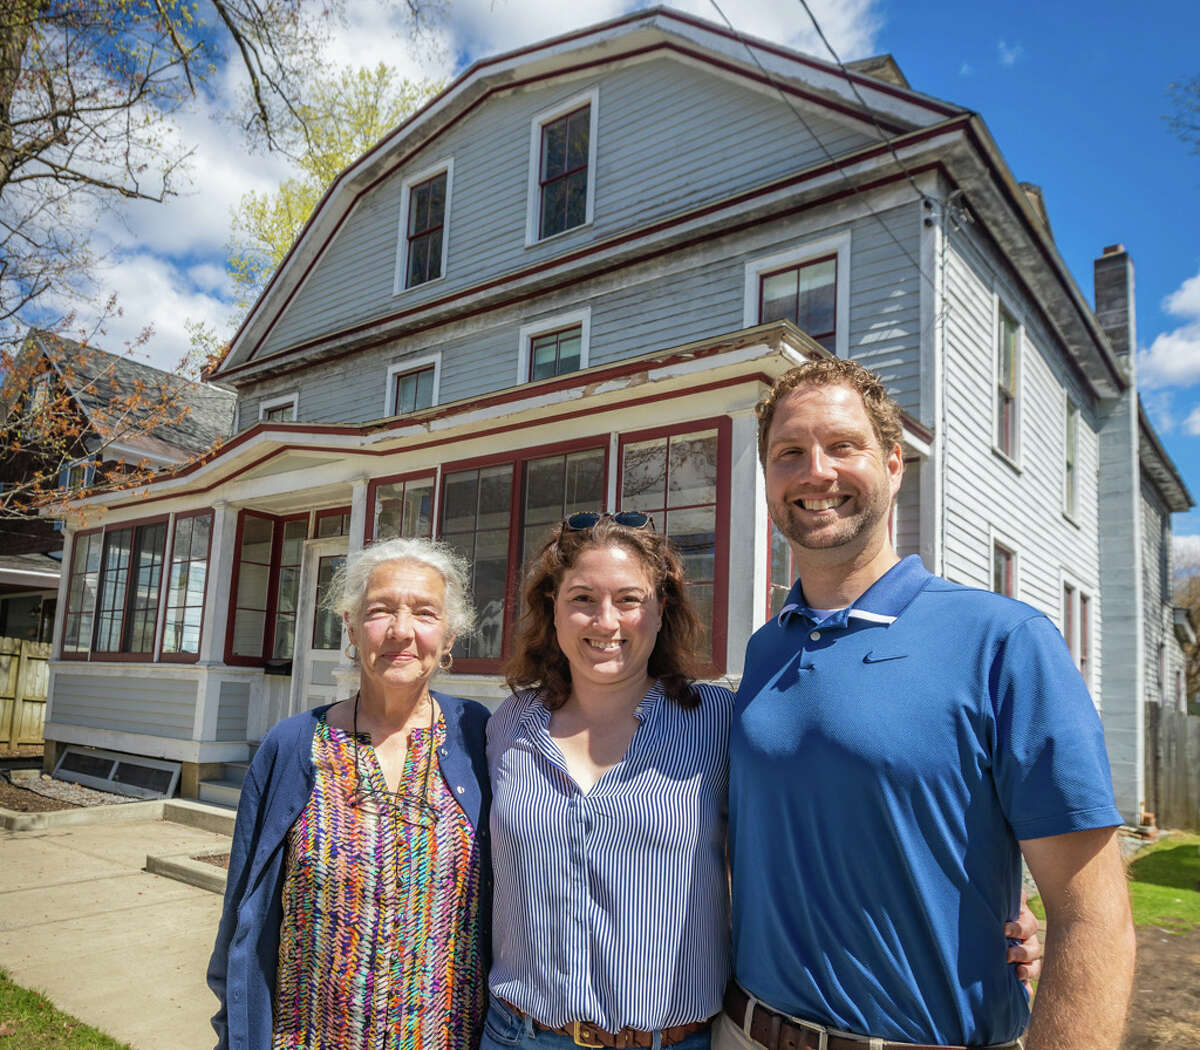 """""""This Old House"""" is filming in Saratoga Springs. The house isa sixth-generation Dutch Colonial, home to Evan Williamson. The homeowners, Susan Williamson with her son, Evan, and his wife, Whitney, who plan to raise a family in the home."""